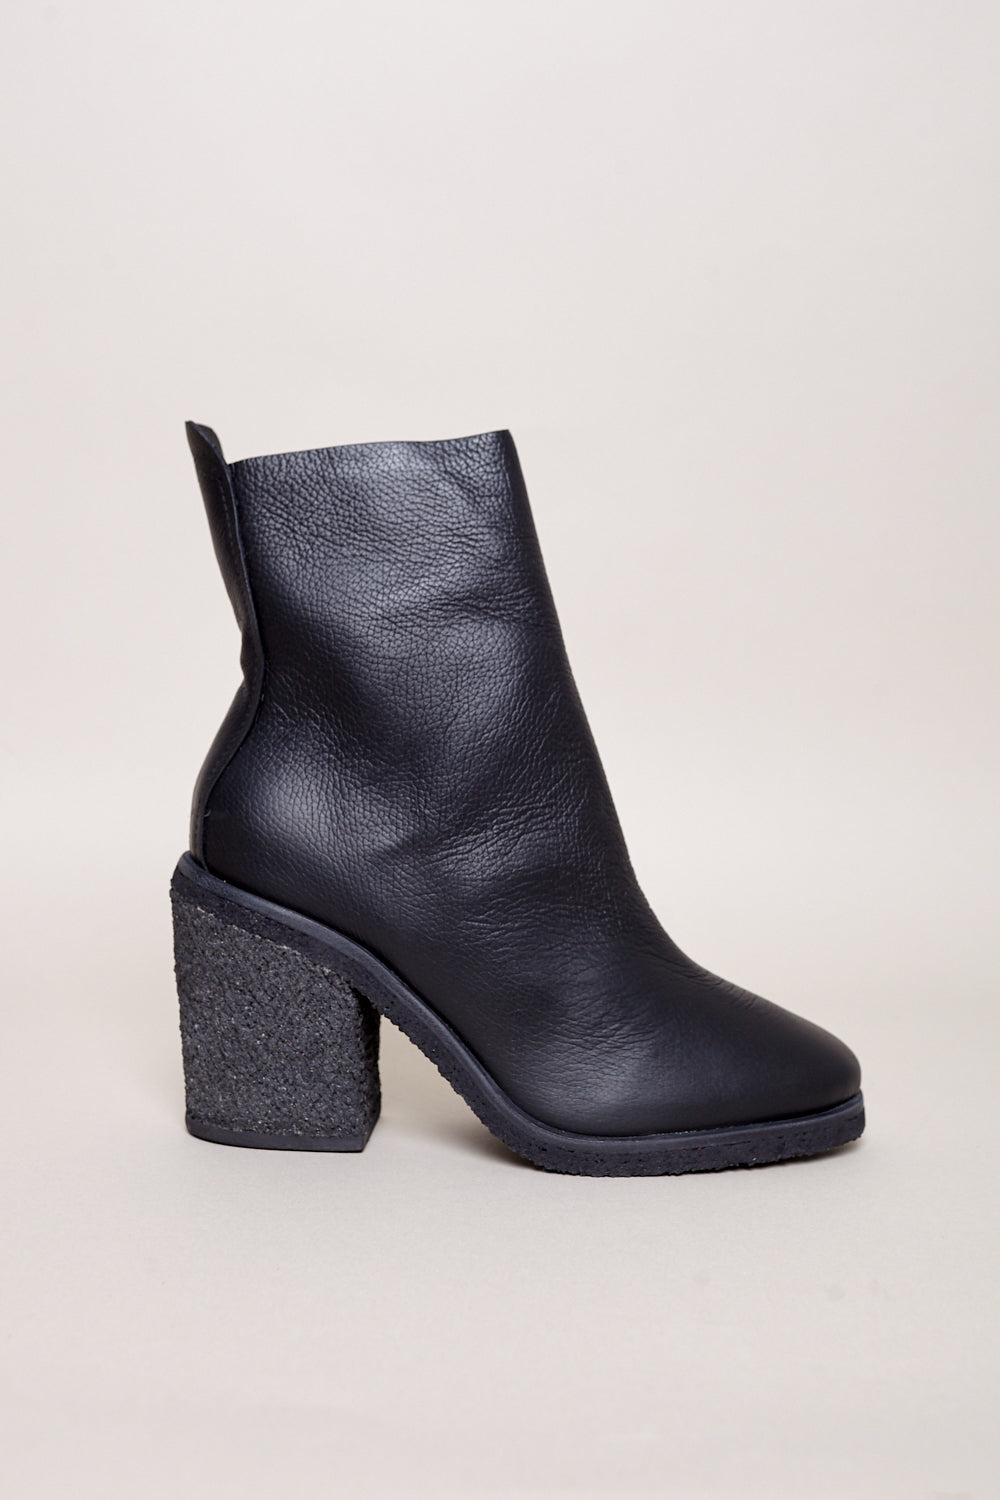 Briggs Ankle Boot in Black Calf